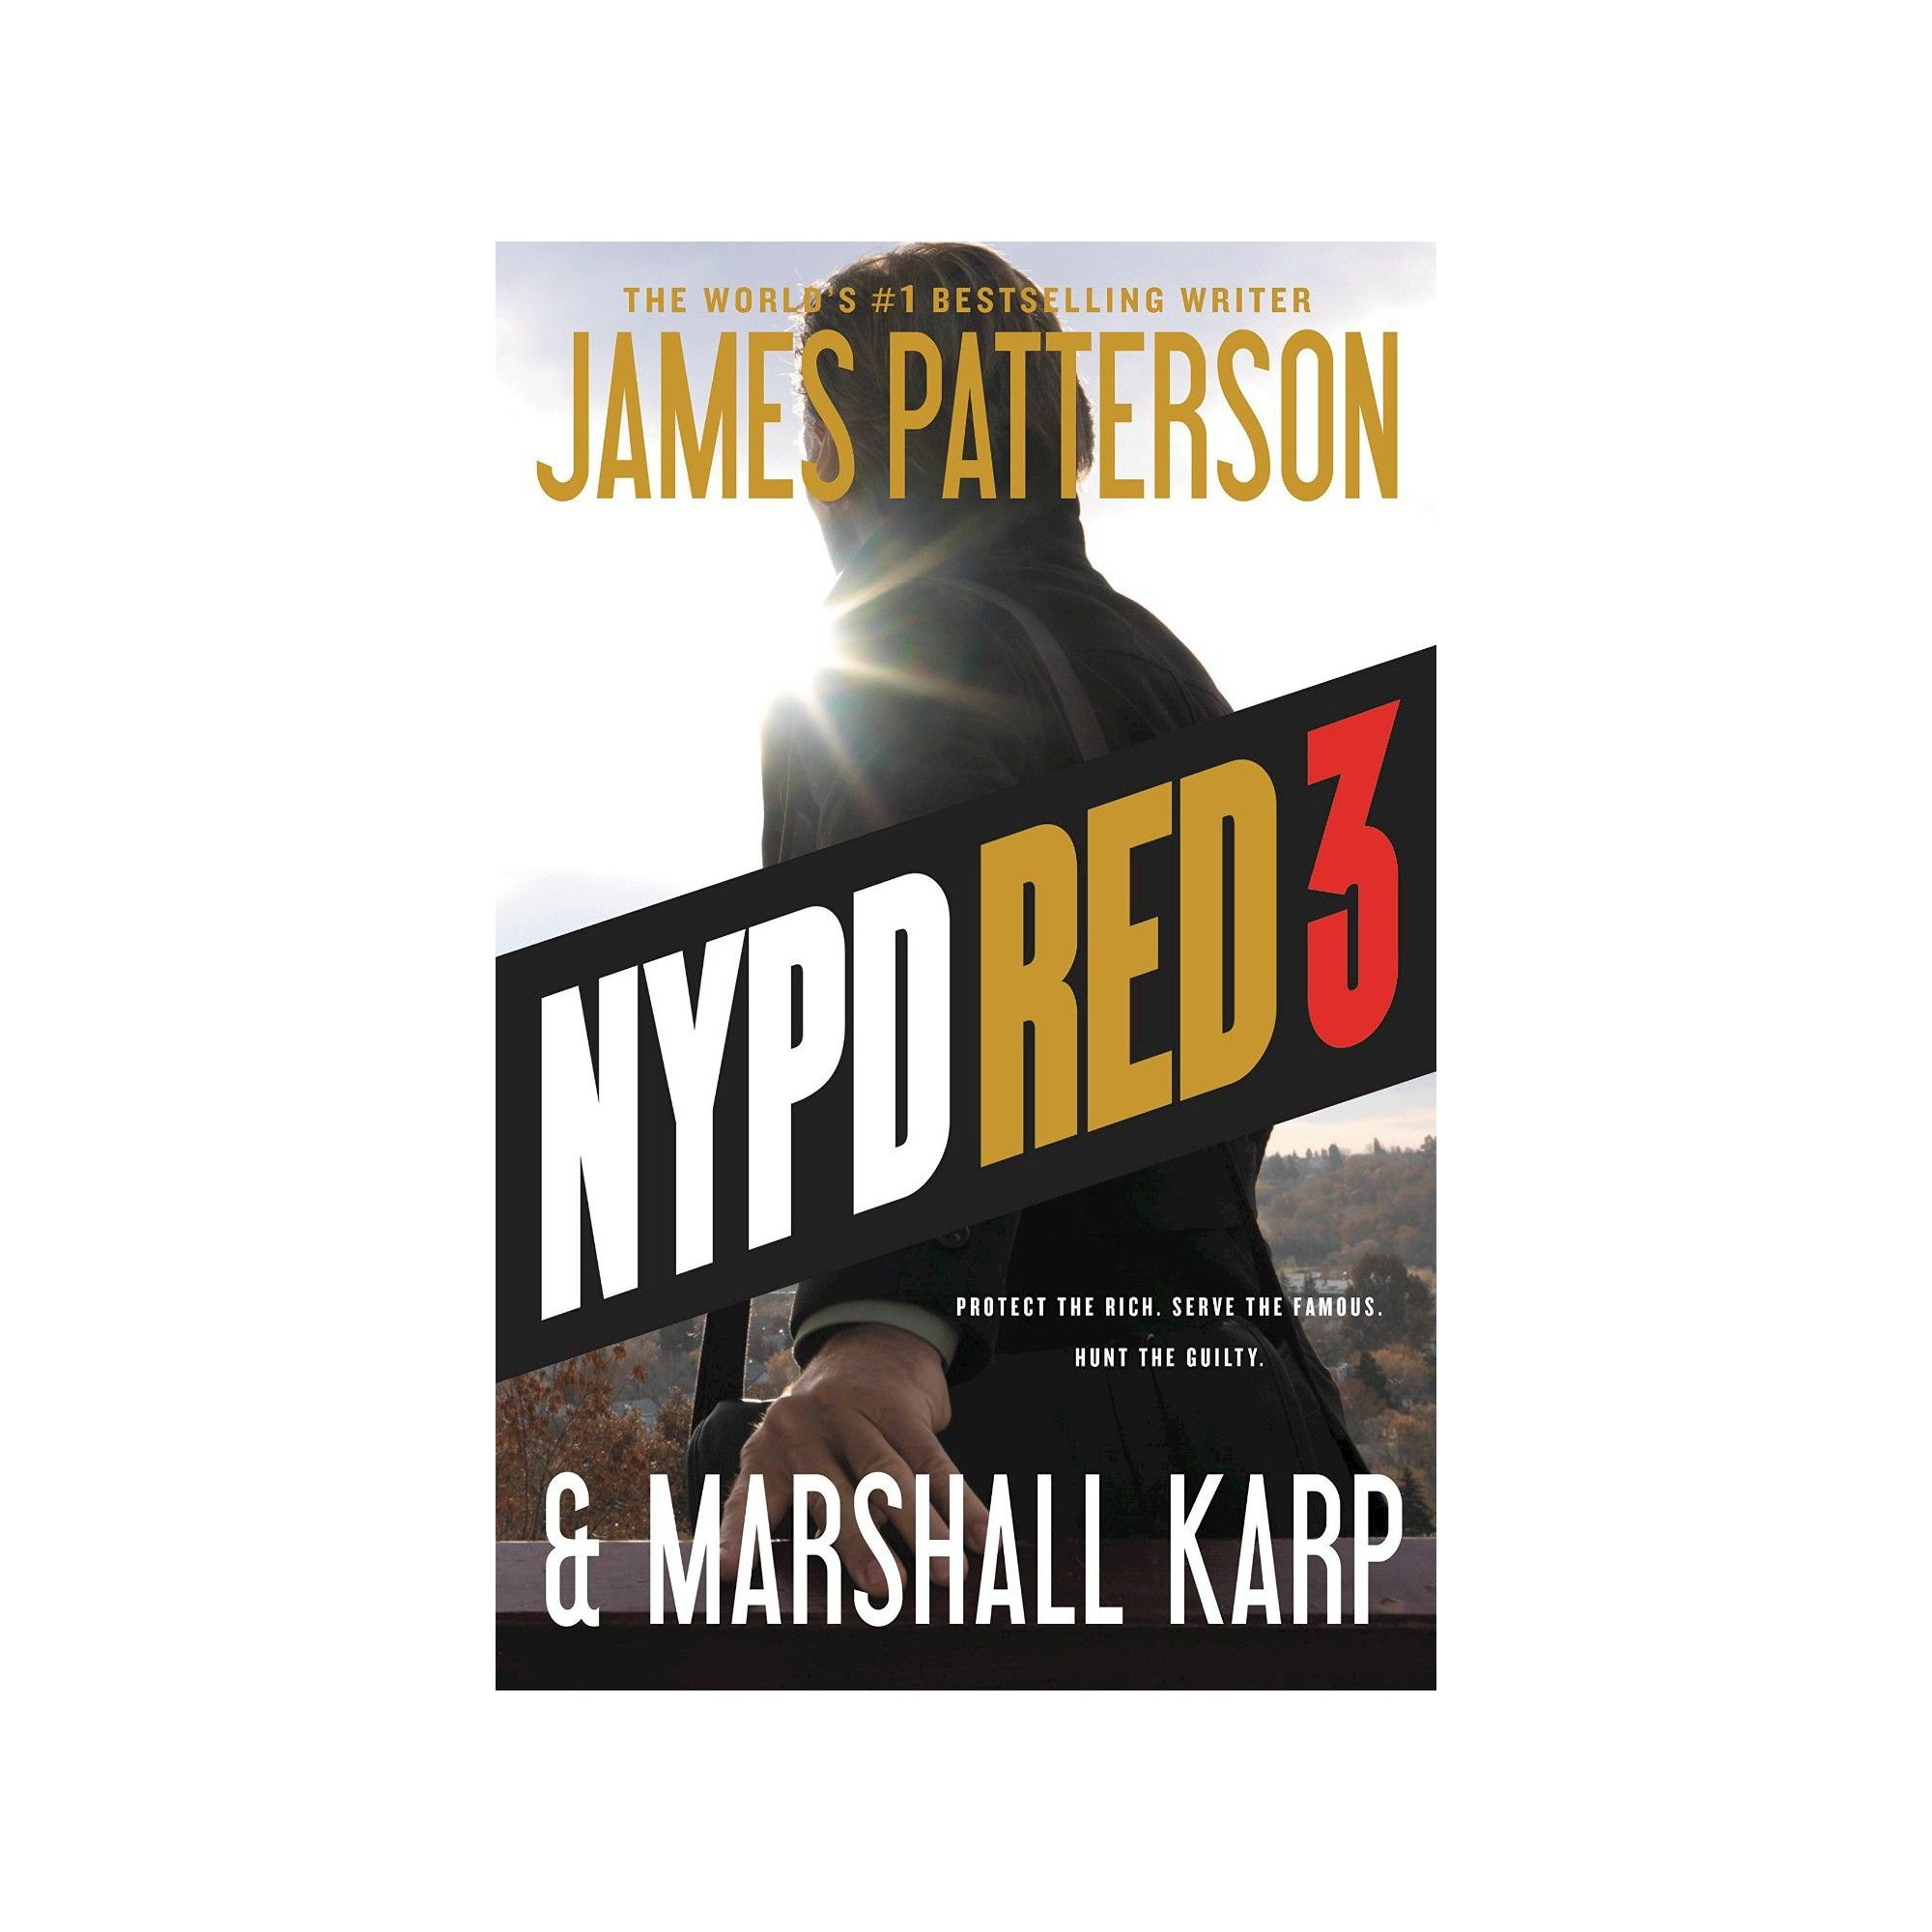 Nypd red 3 nypd red hardcover by james patterson